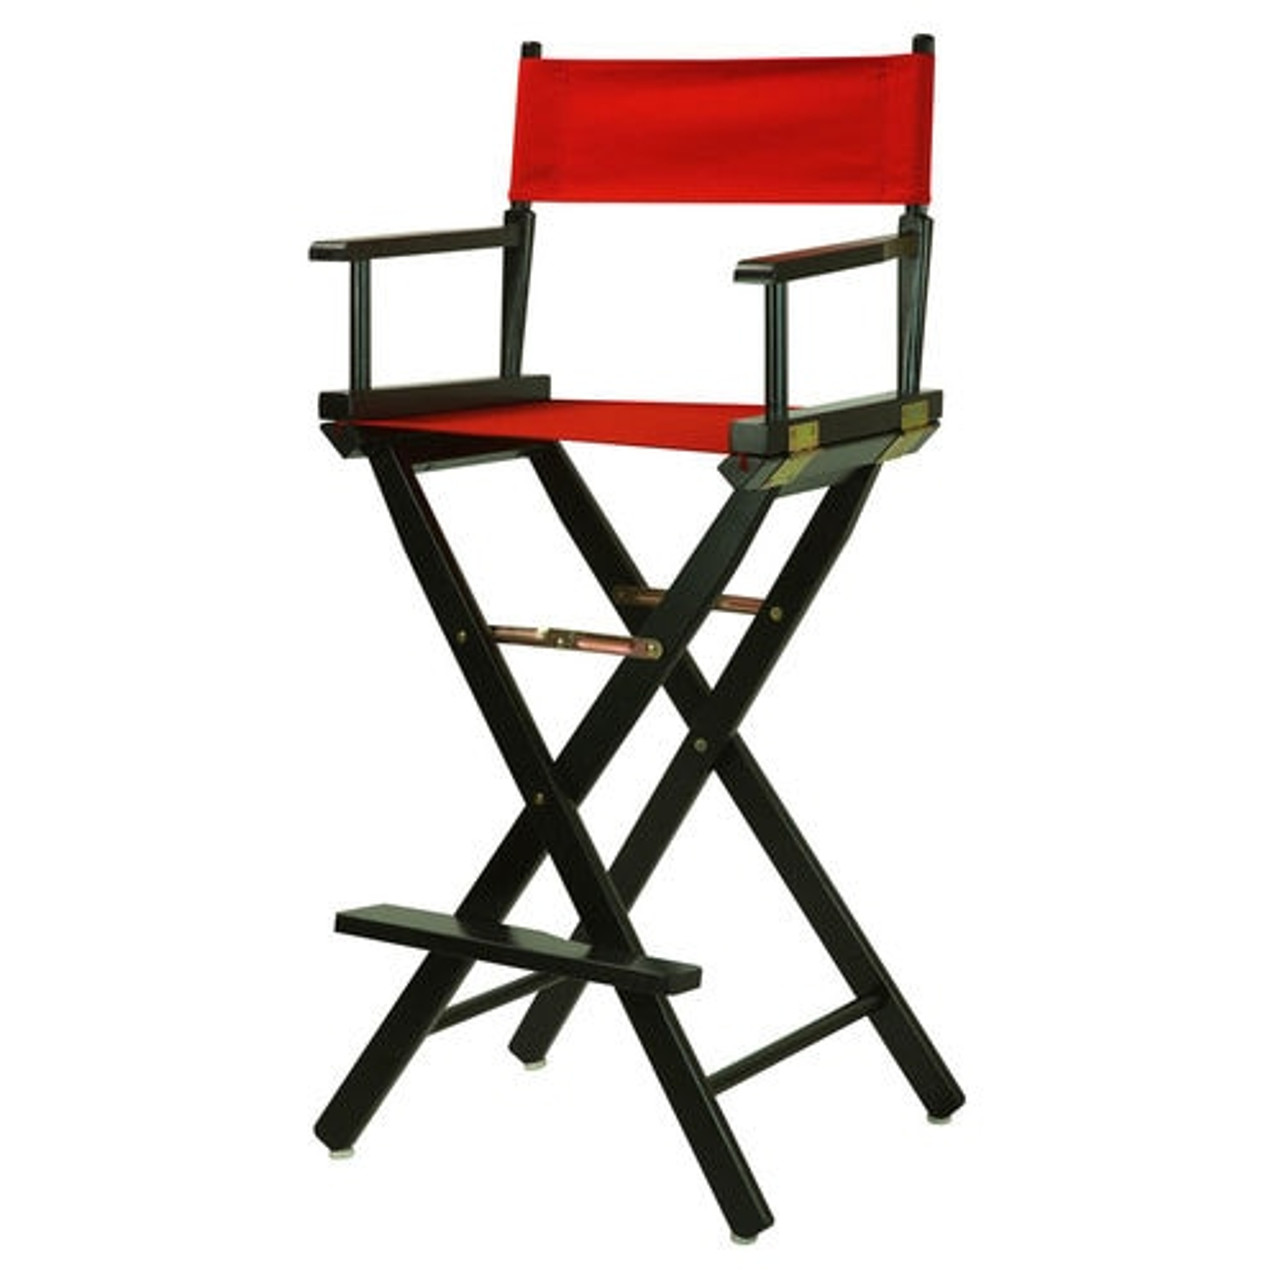 Peachy Rental Fold Up Directors Chair 30 Black Or Red Ncnpc Chair Design For Home Ncnpcorg